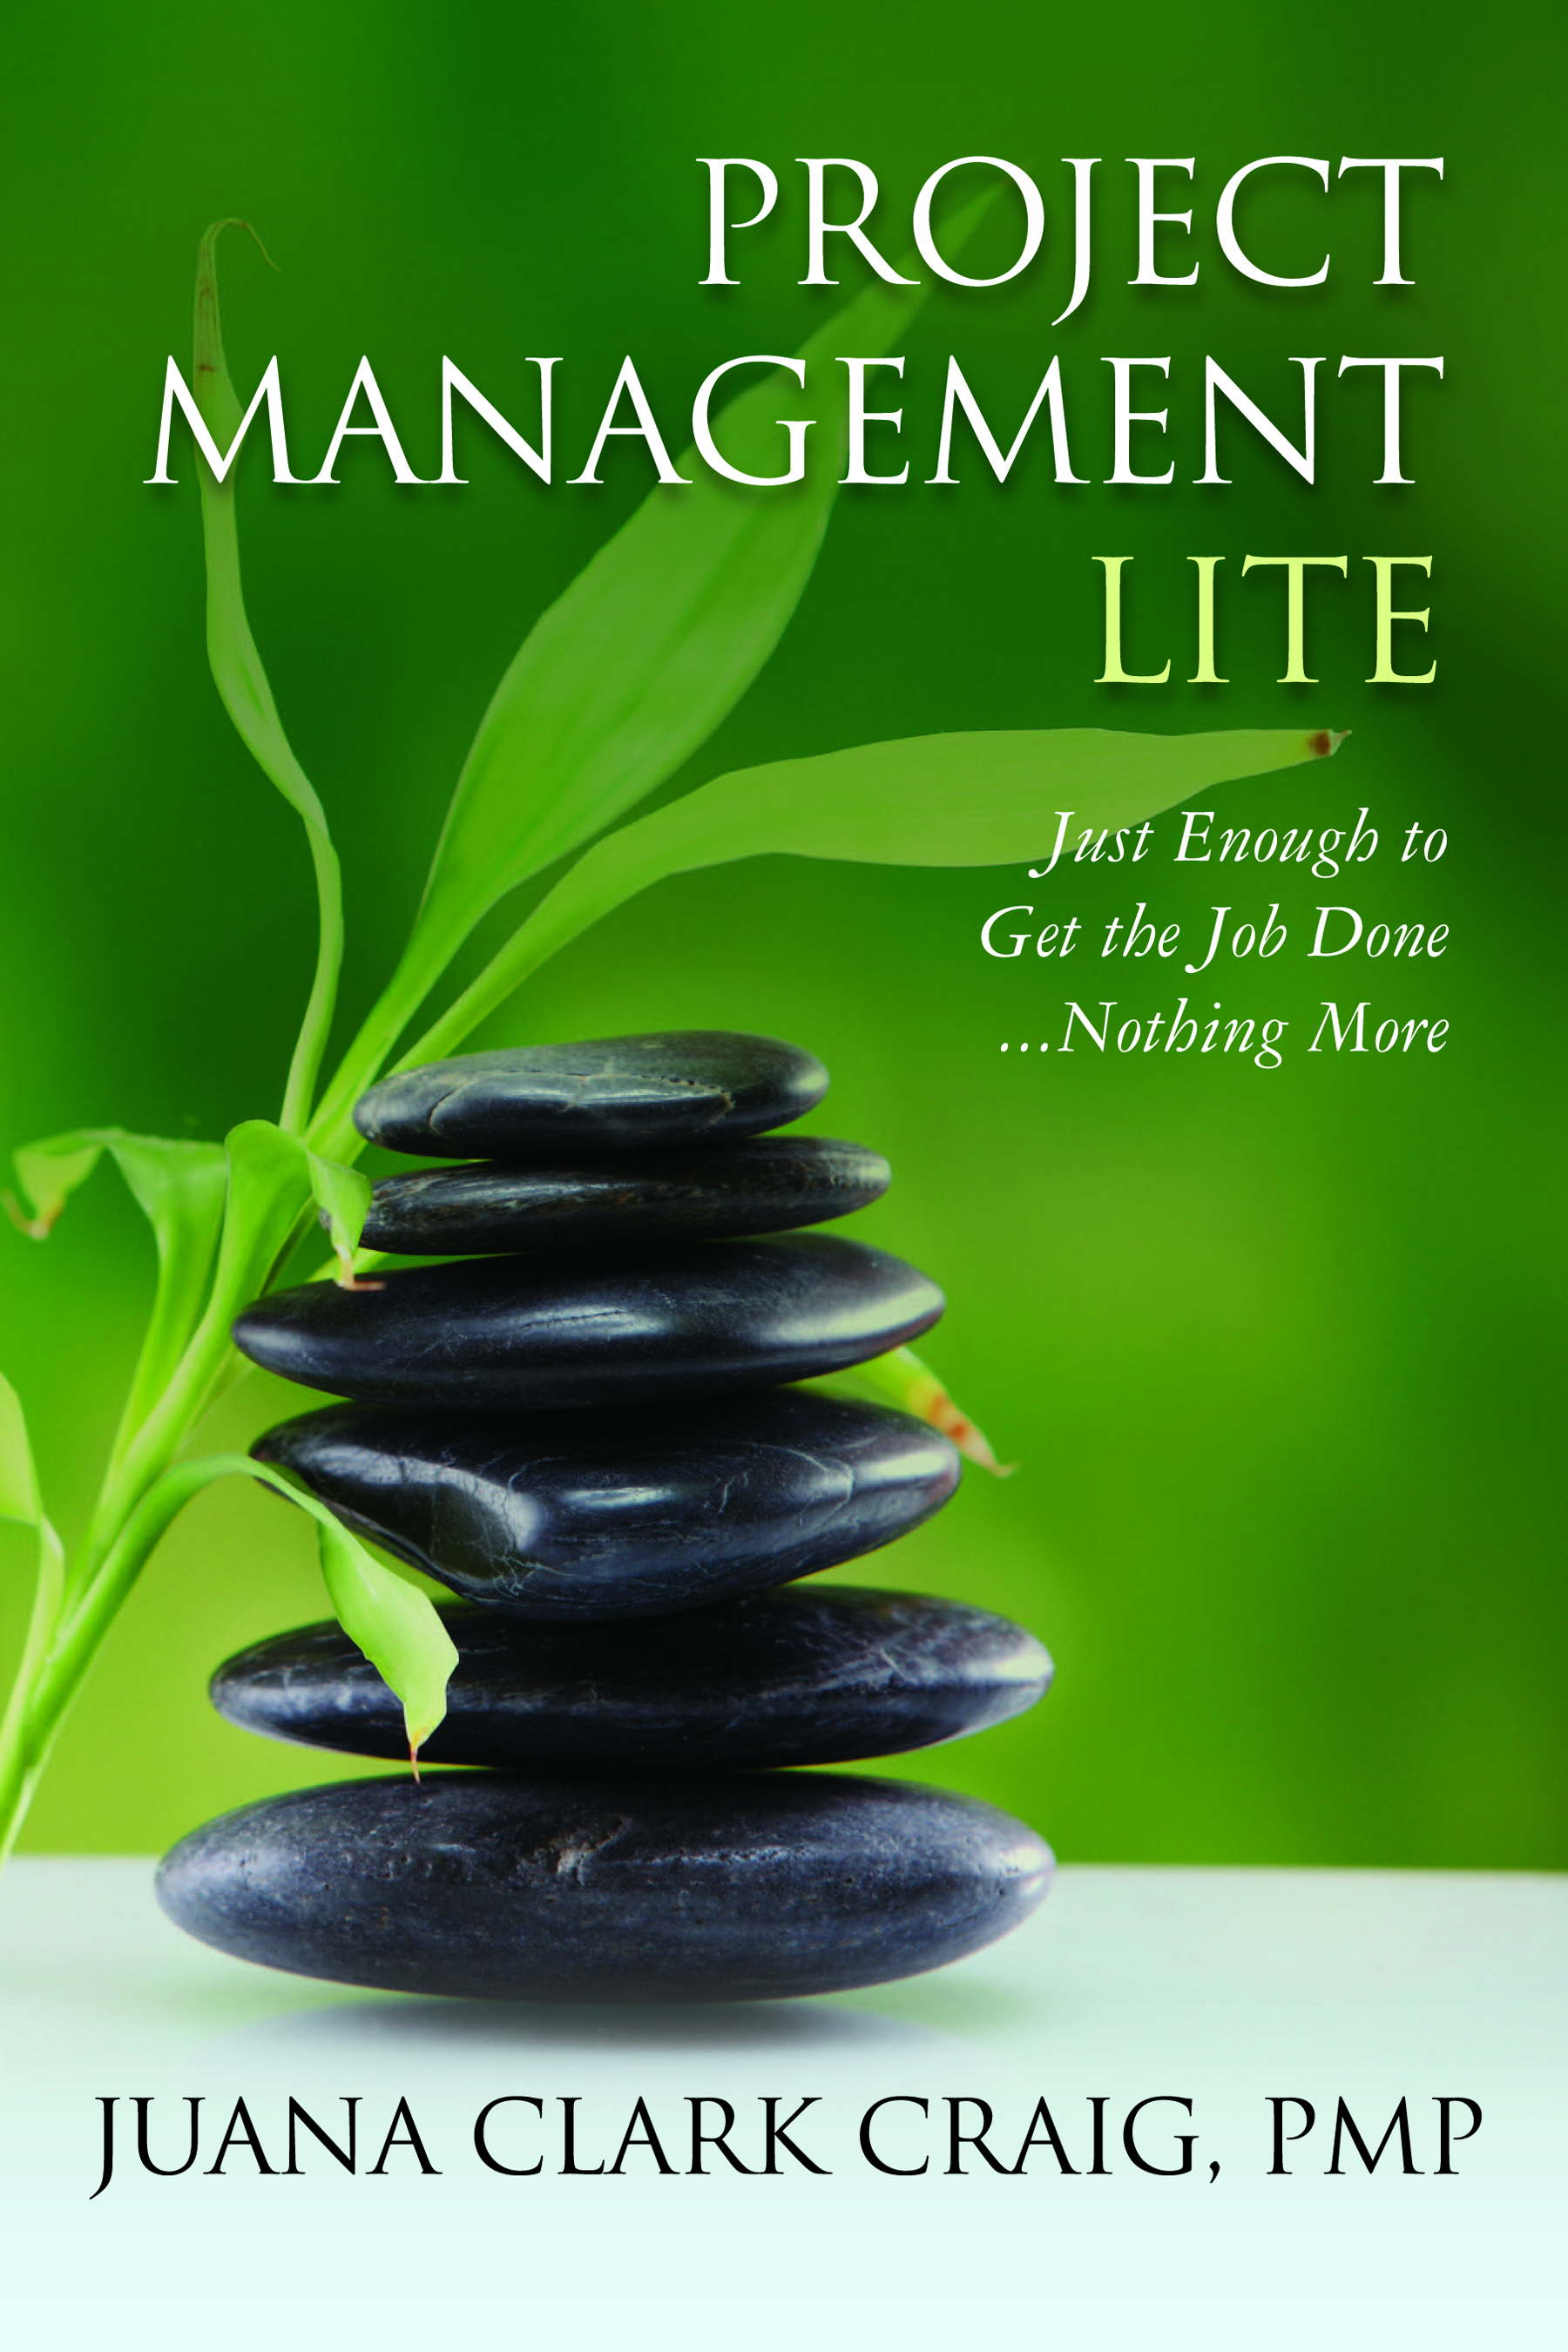 Simple Book Cover Jobs : Just enough to get the job done project management lite